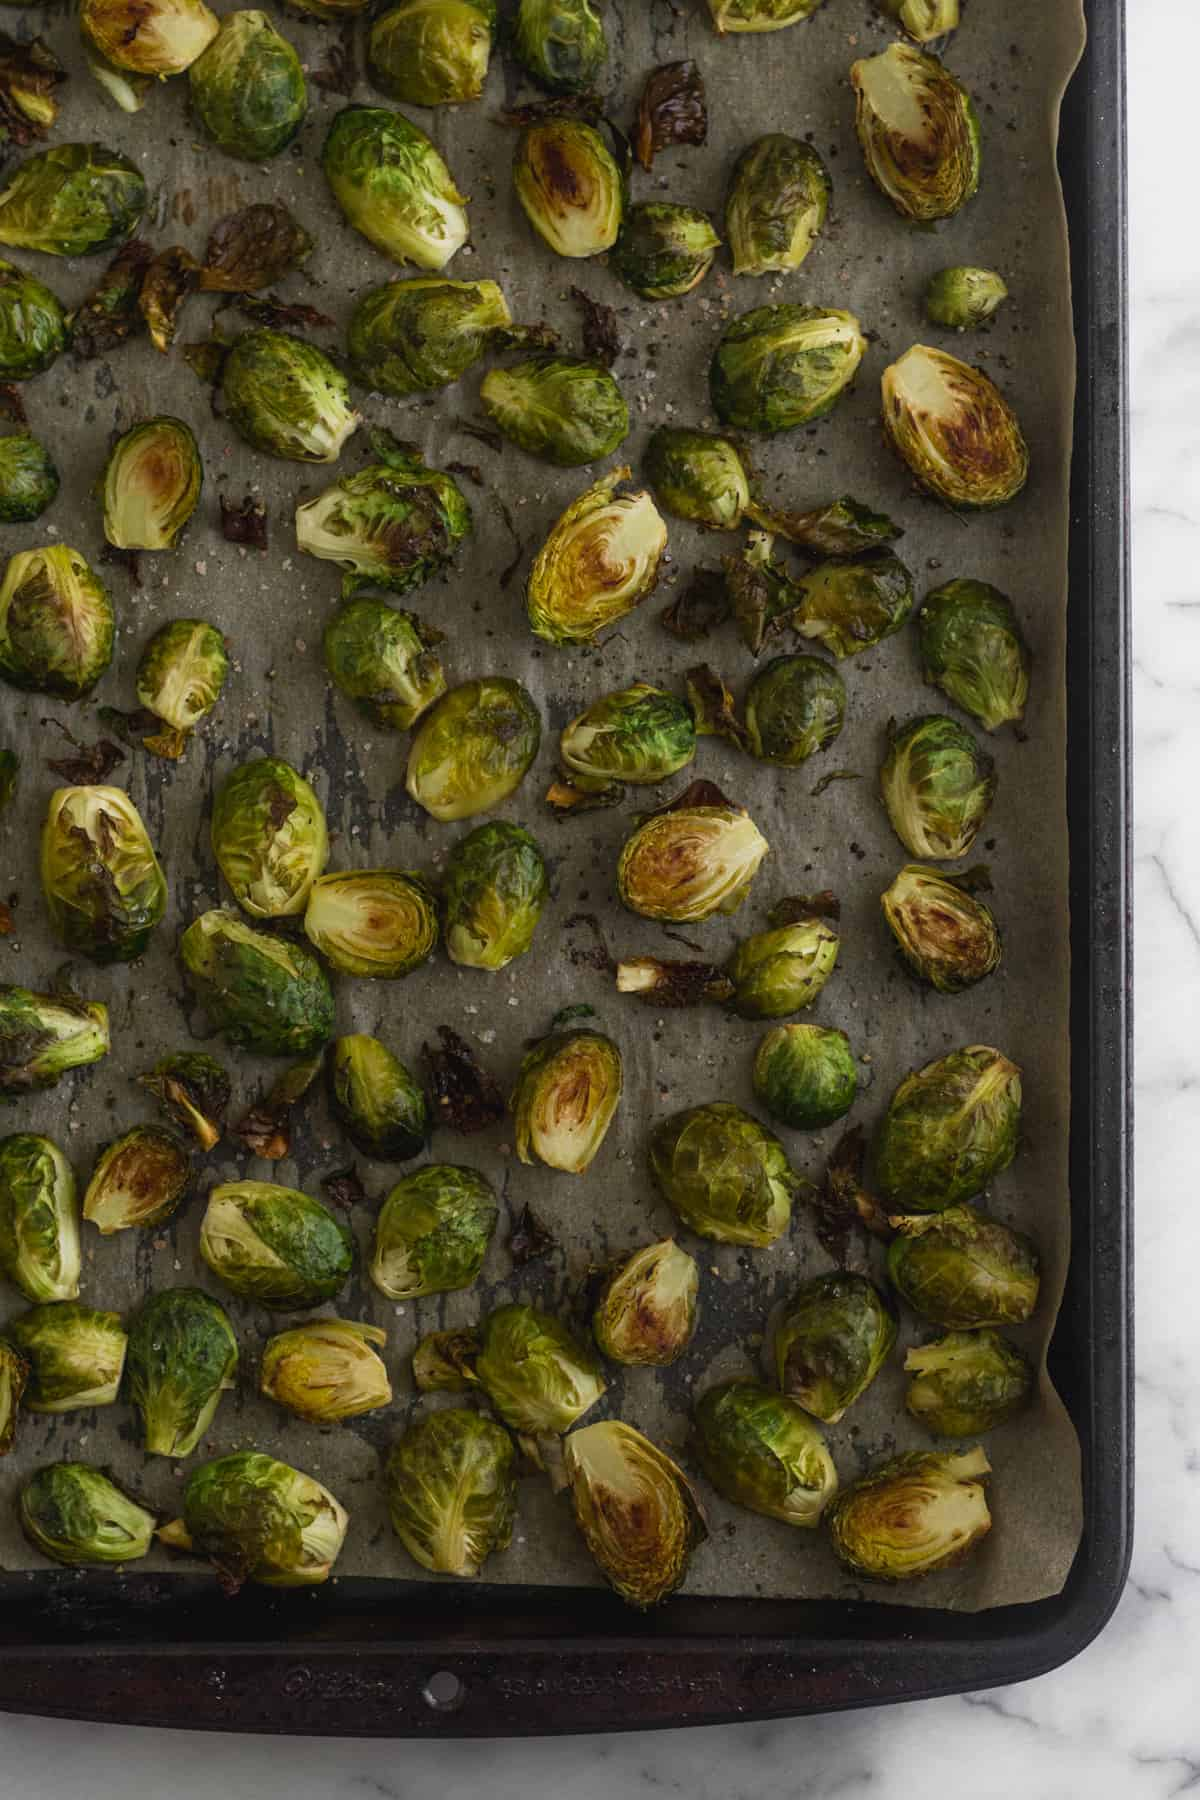 Large pan of roasted brussels sprouts